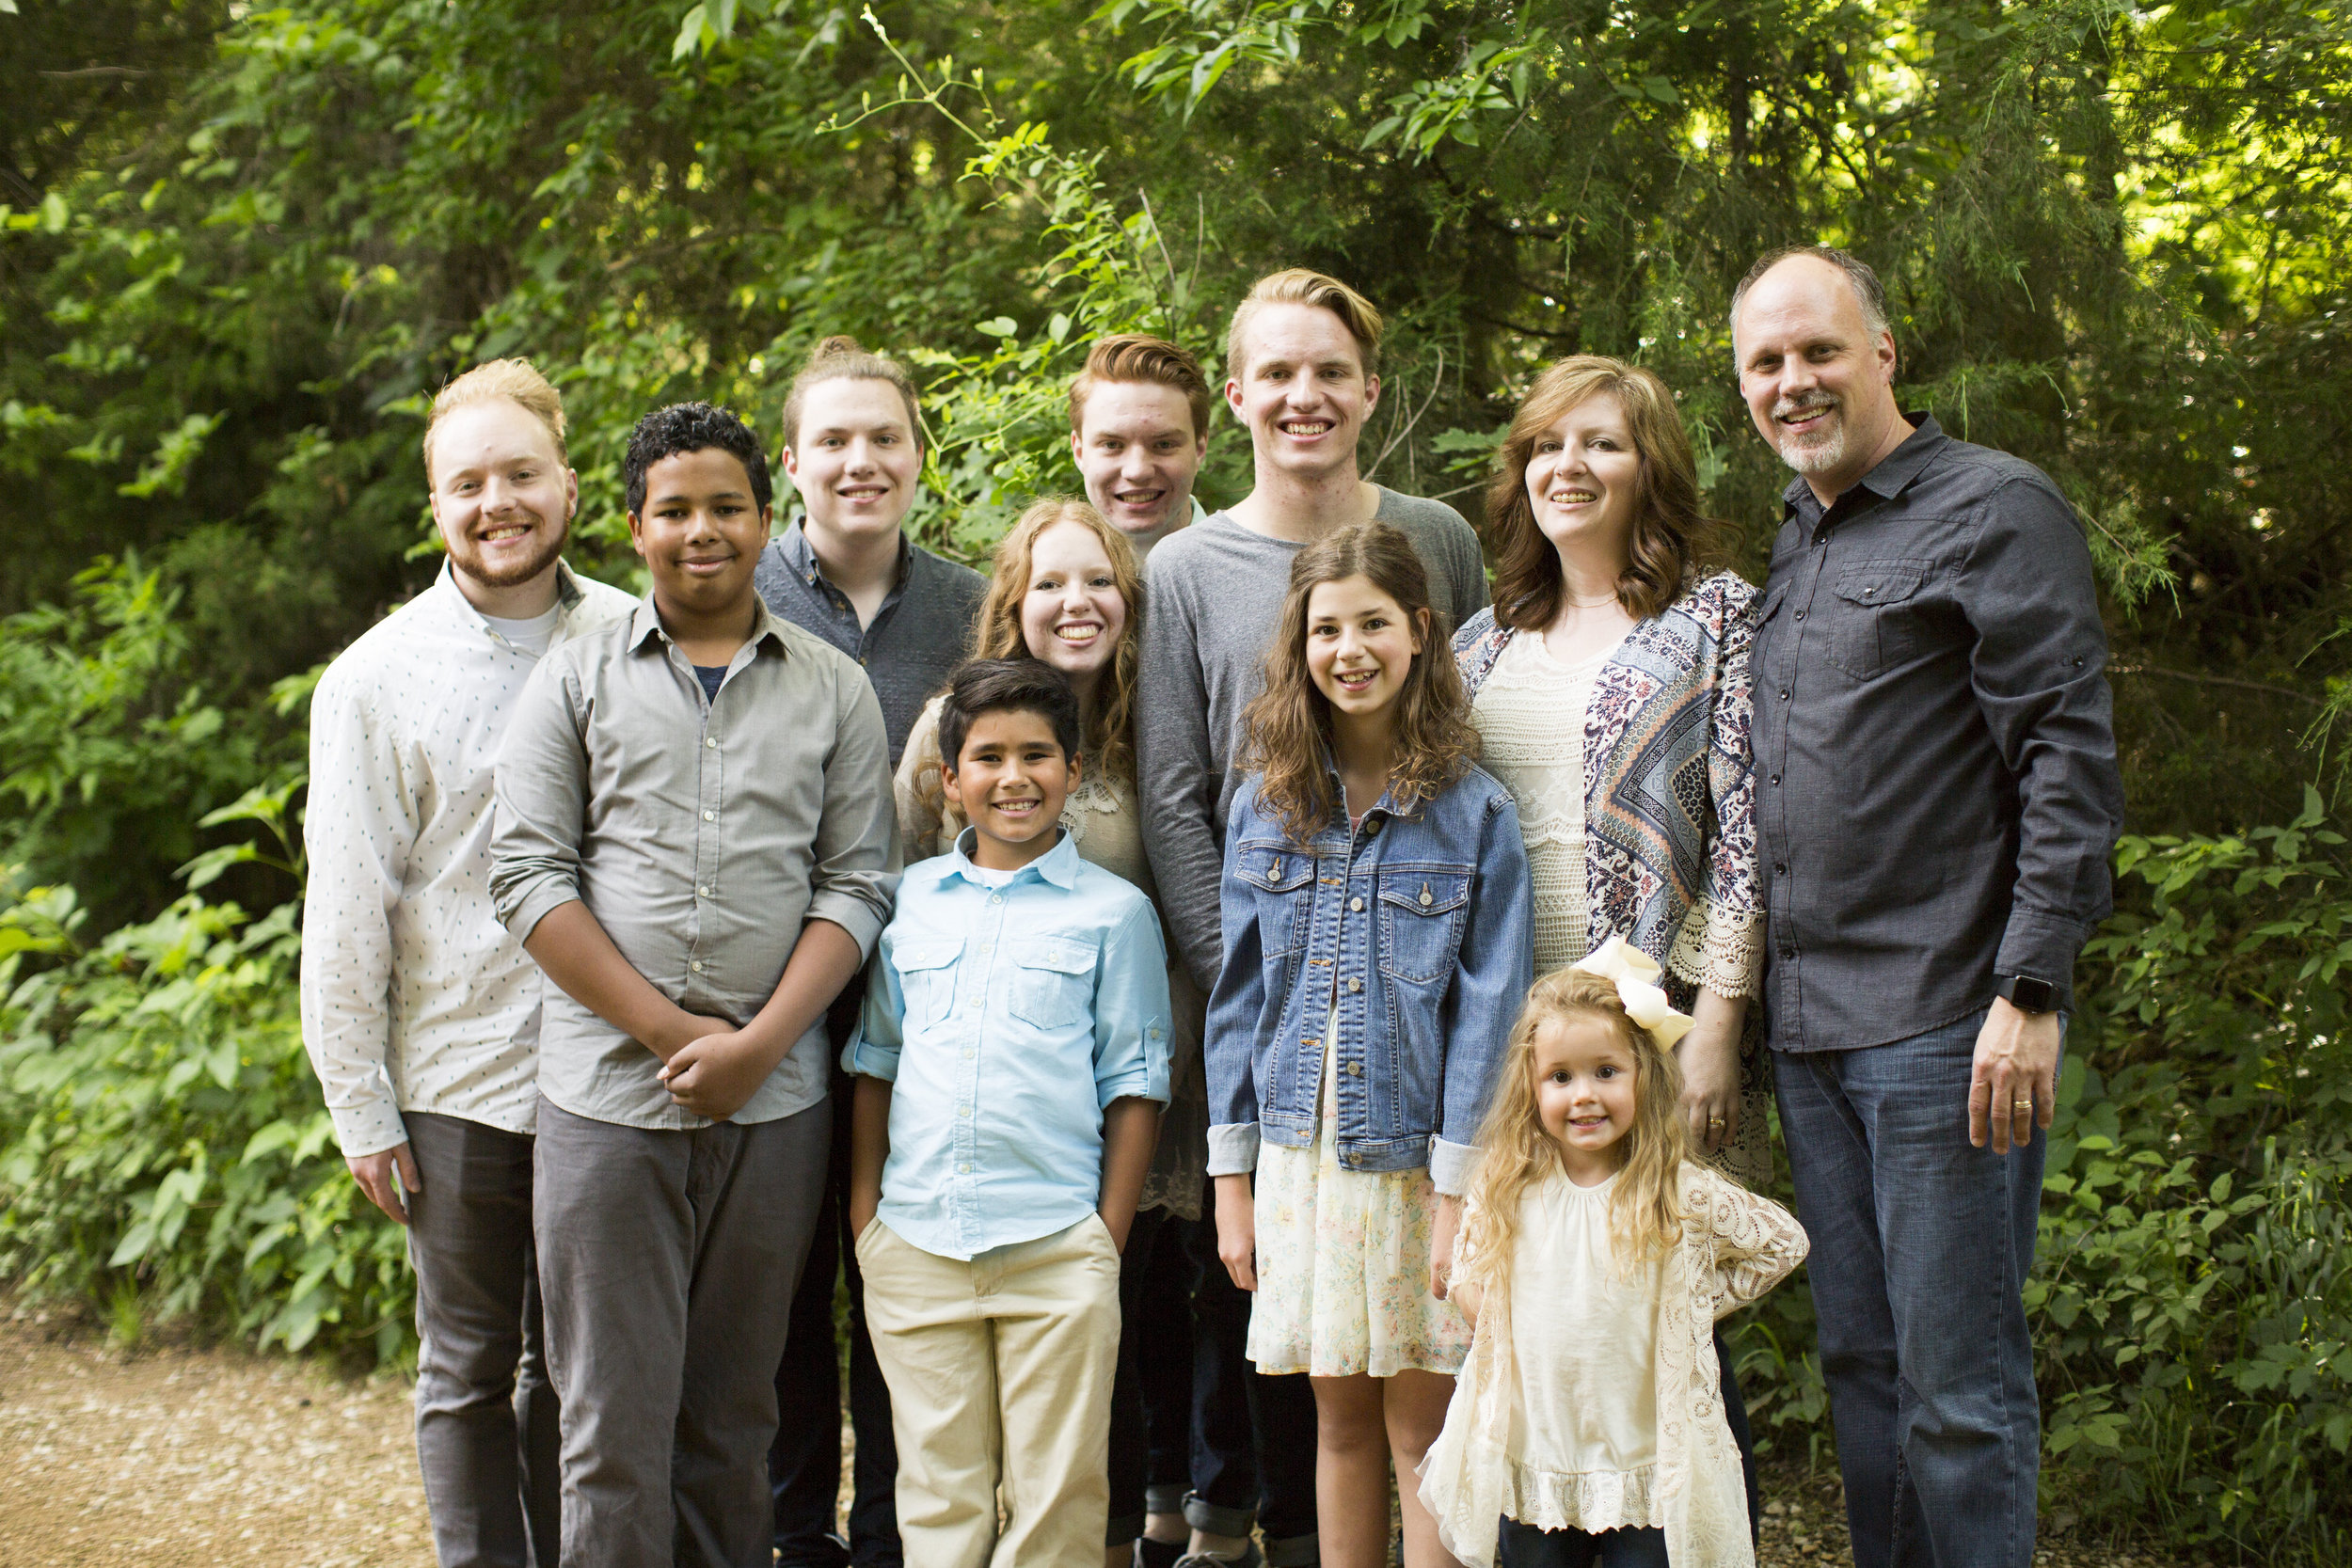 All about Family - Pastors Ricky and Joni Franklin enjoy their nine children. After having five biological children, they adopted four beautiful children through foster care. Now they share their love for family with everyone they meet.